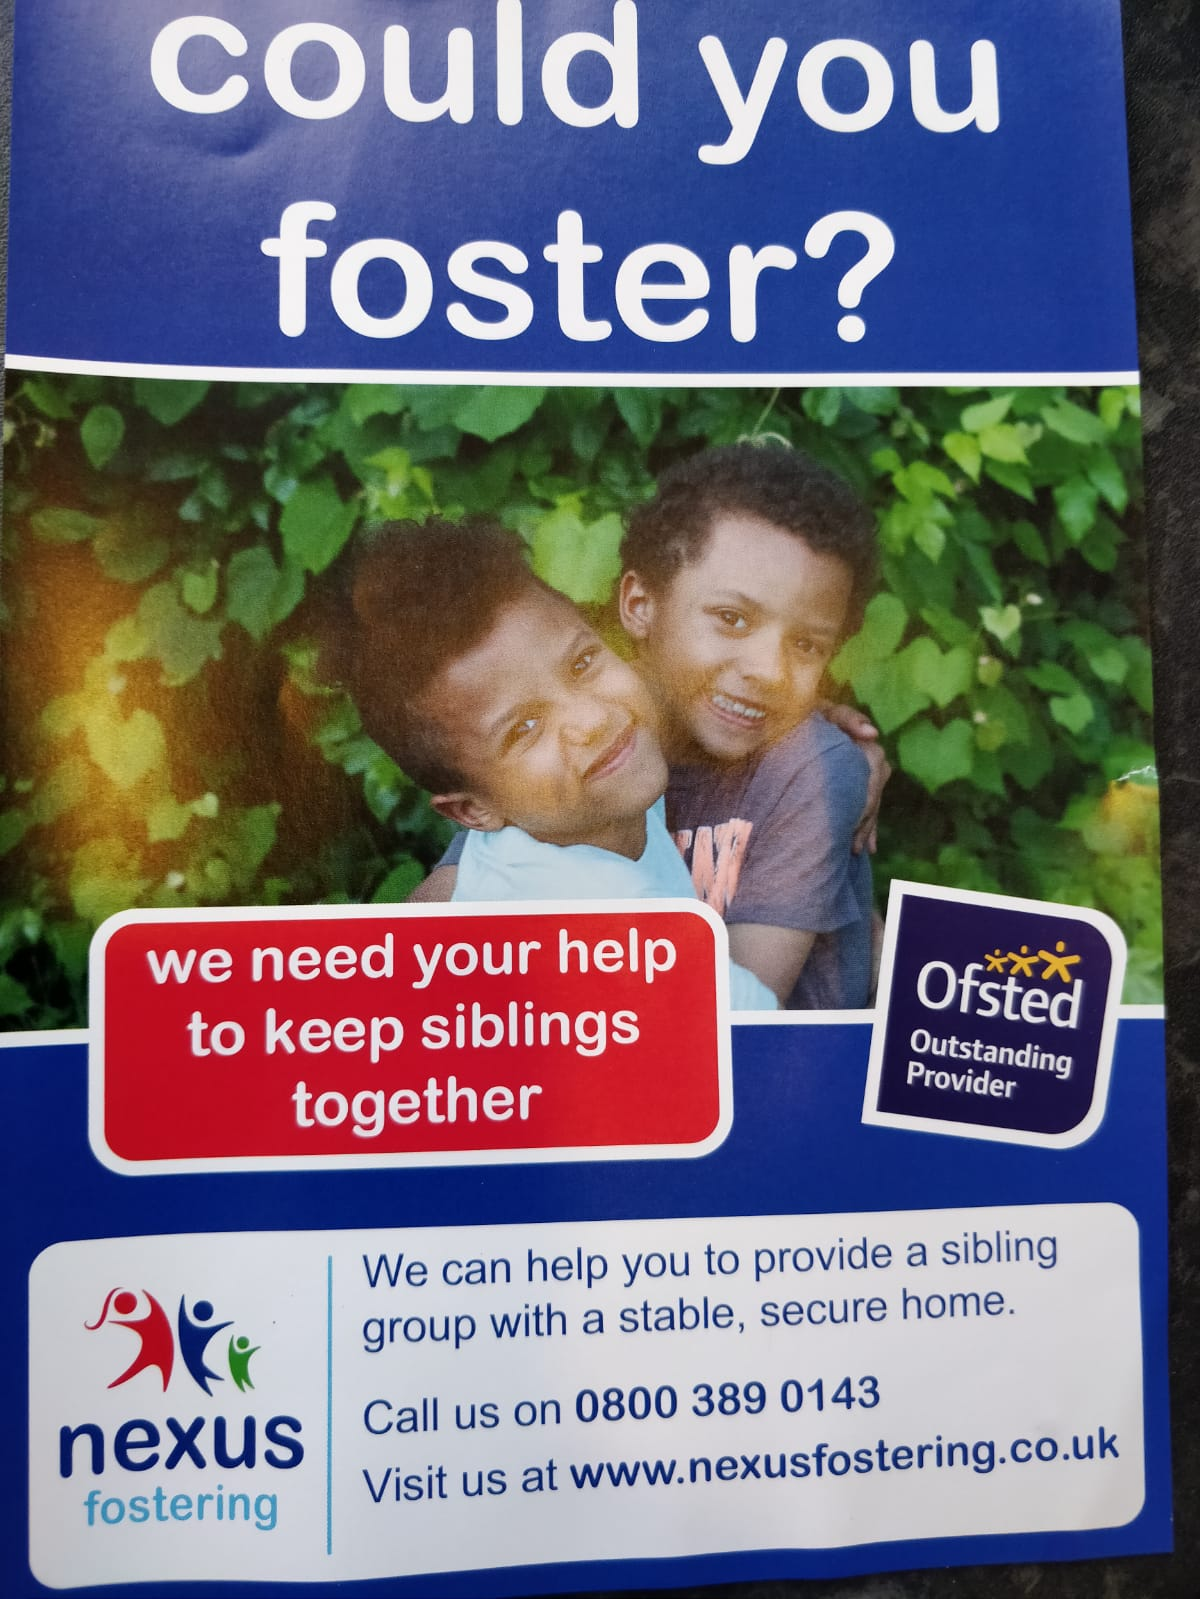 Could you foster? Nexus Fostering